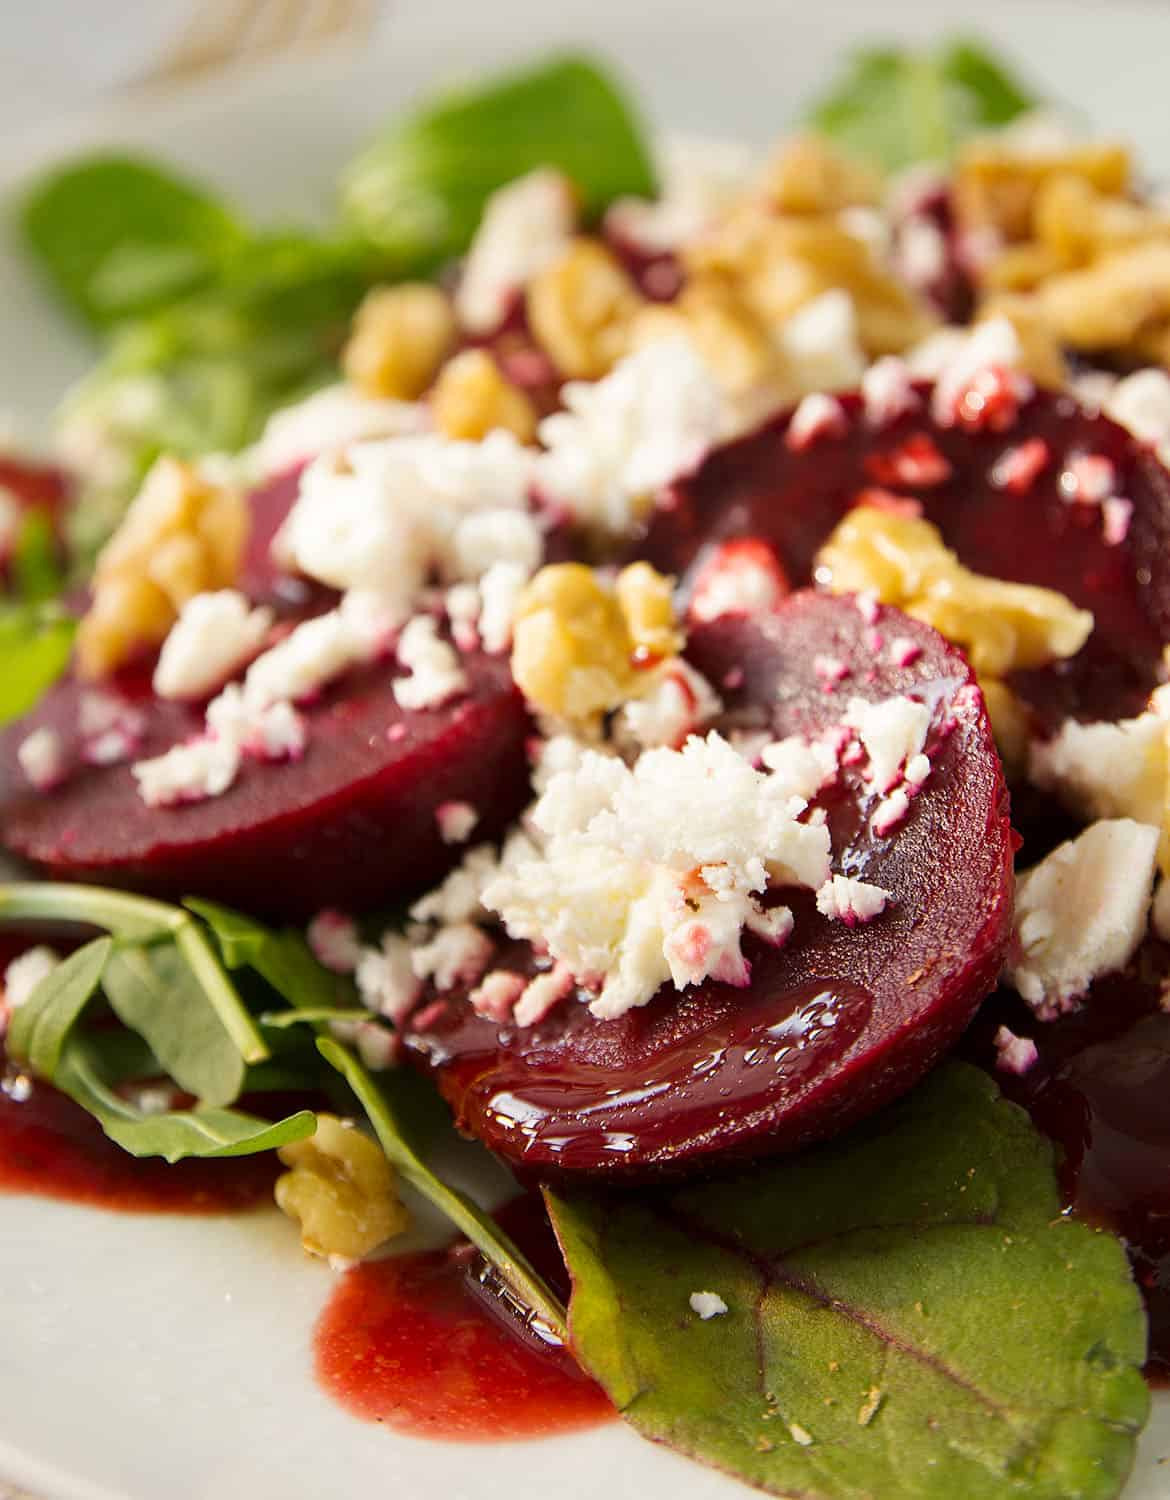 A close-up of beetroot salad with feta with a ruby dressing over a white plate.